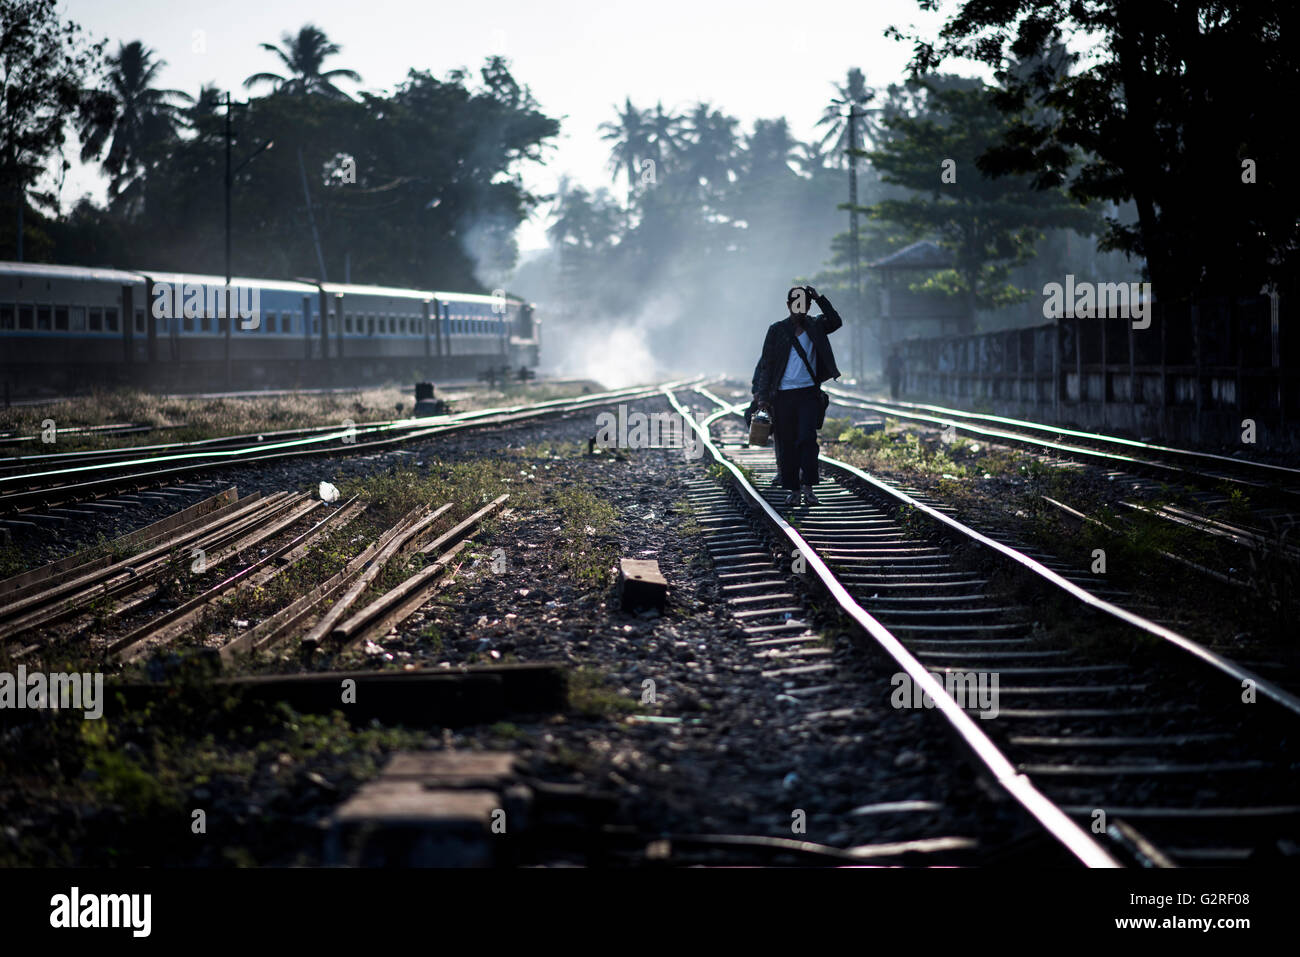 A man walks on the Rail tracks of the Yangon Central Train Station, Myanmar. - Stock Image